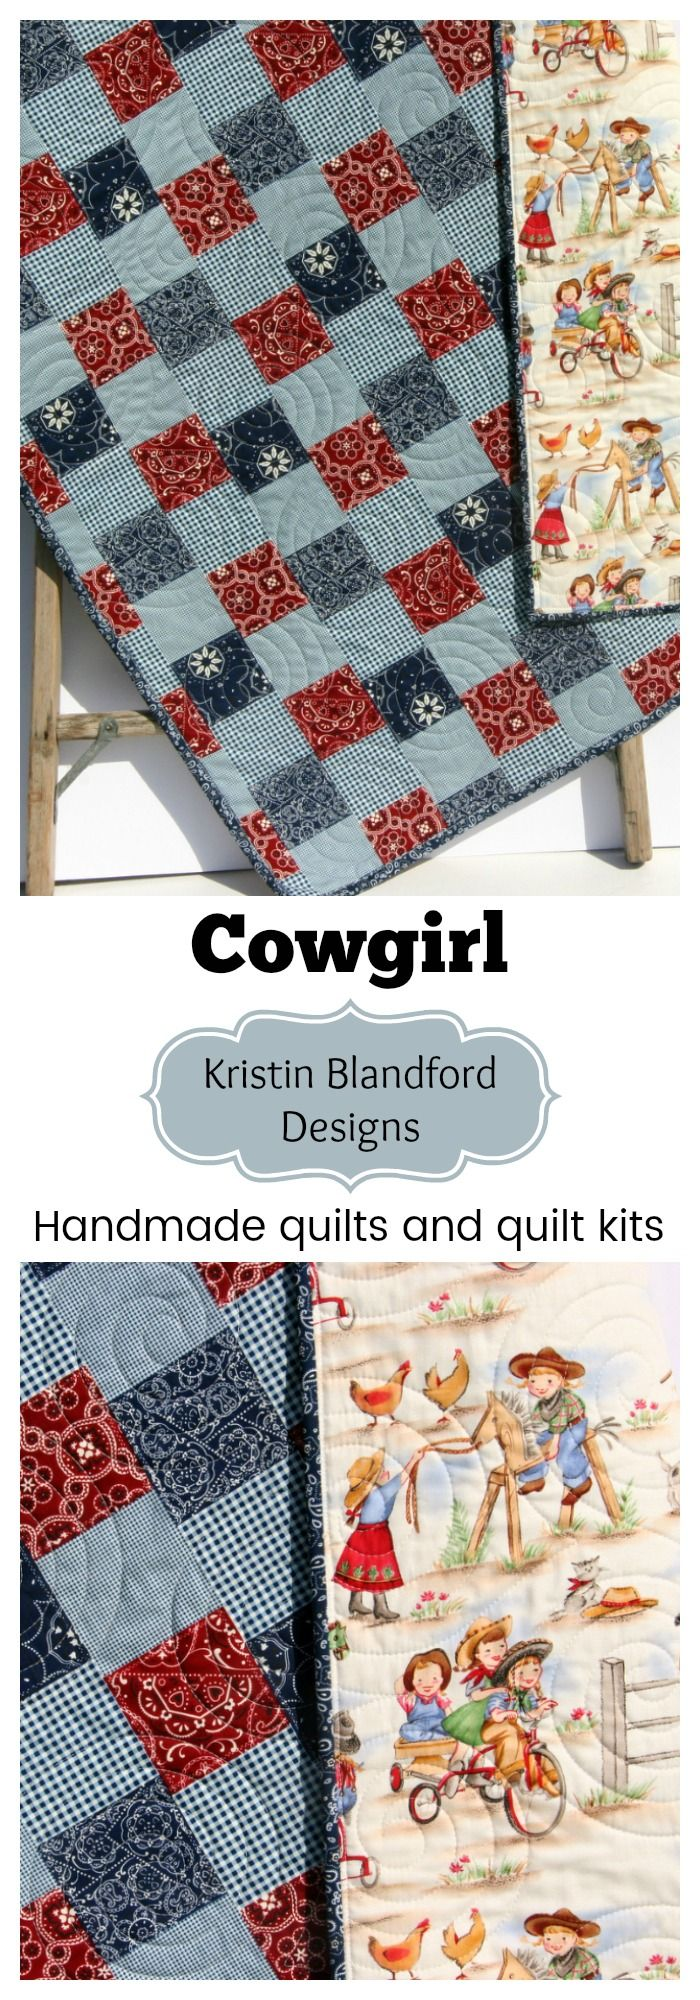 Handmade Western Baby Quilt, Toddler Quilt, Faux Patchwork Cheater Panel Quilt Kit, Baby Quilt Kit, Toddler Quilt Kit, Simple Quick Easy Sewing Quilting Project Western Cowboy Cowgirl Baby Bedding Nursery Blanket by Kristin Blandford Designs #babyquilts #handmadegift #babyshowergifts